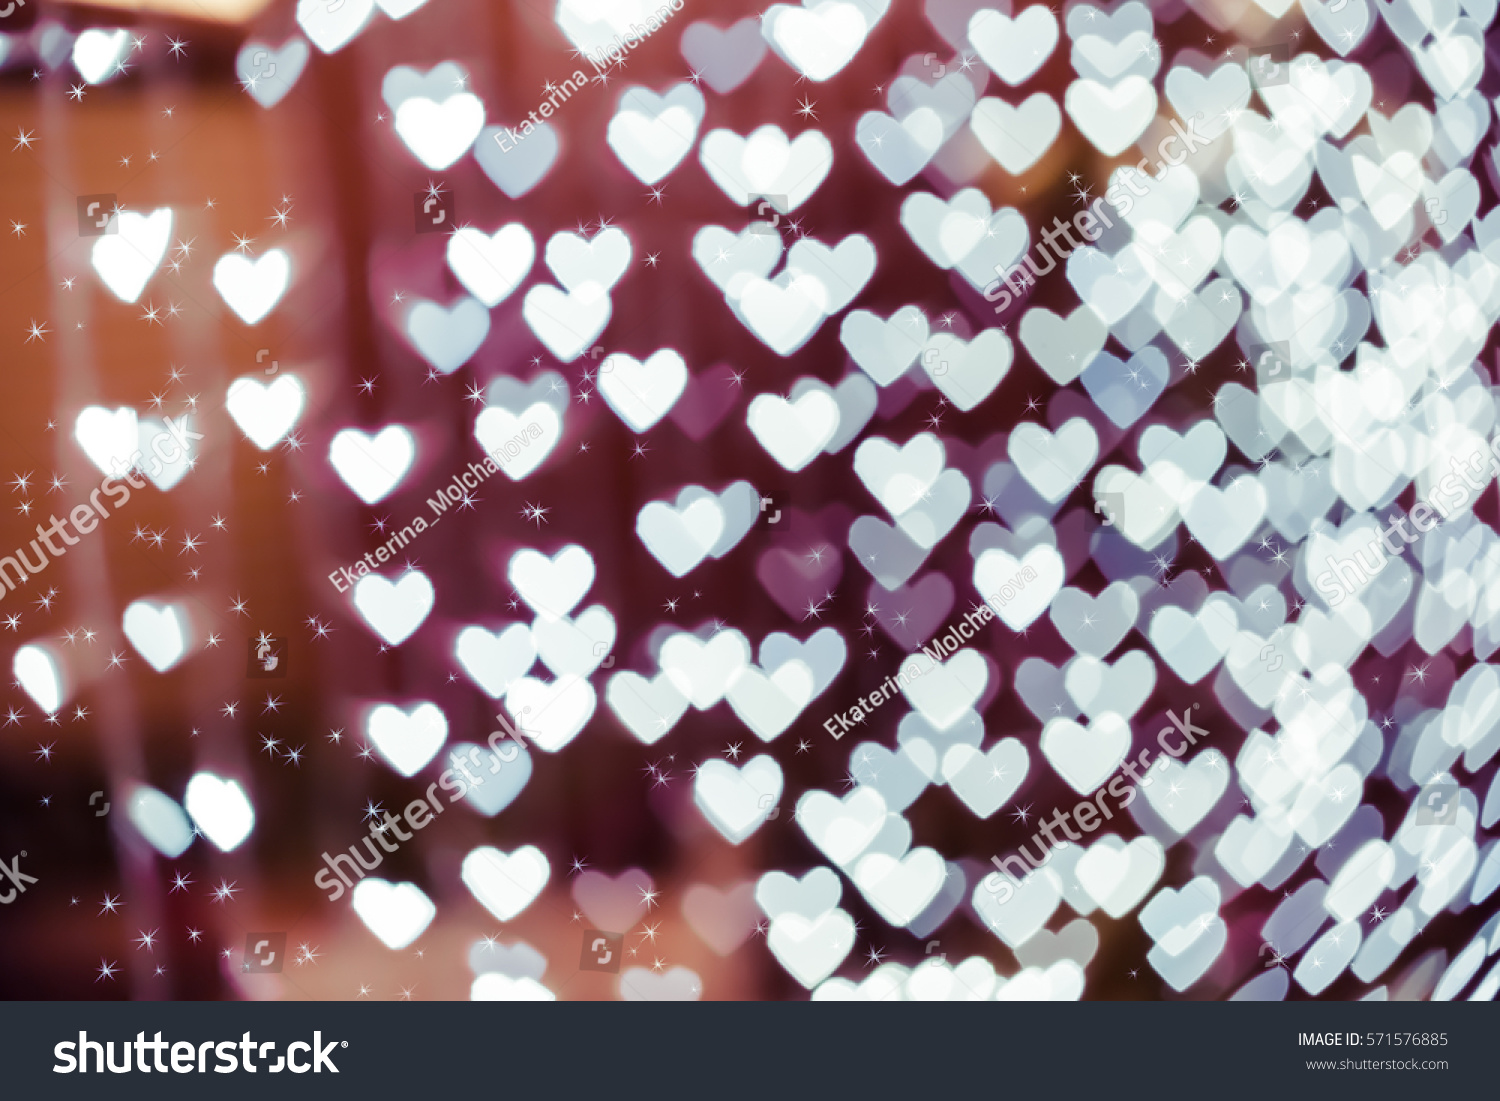 Heart shaped holiday blurred bokeh background stock photo